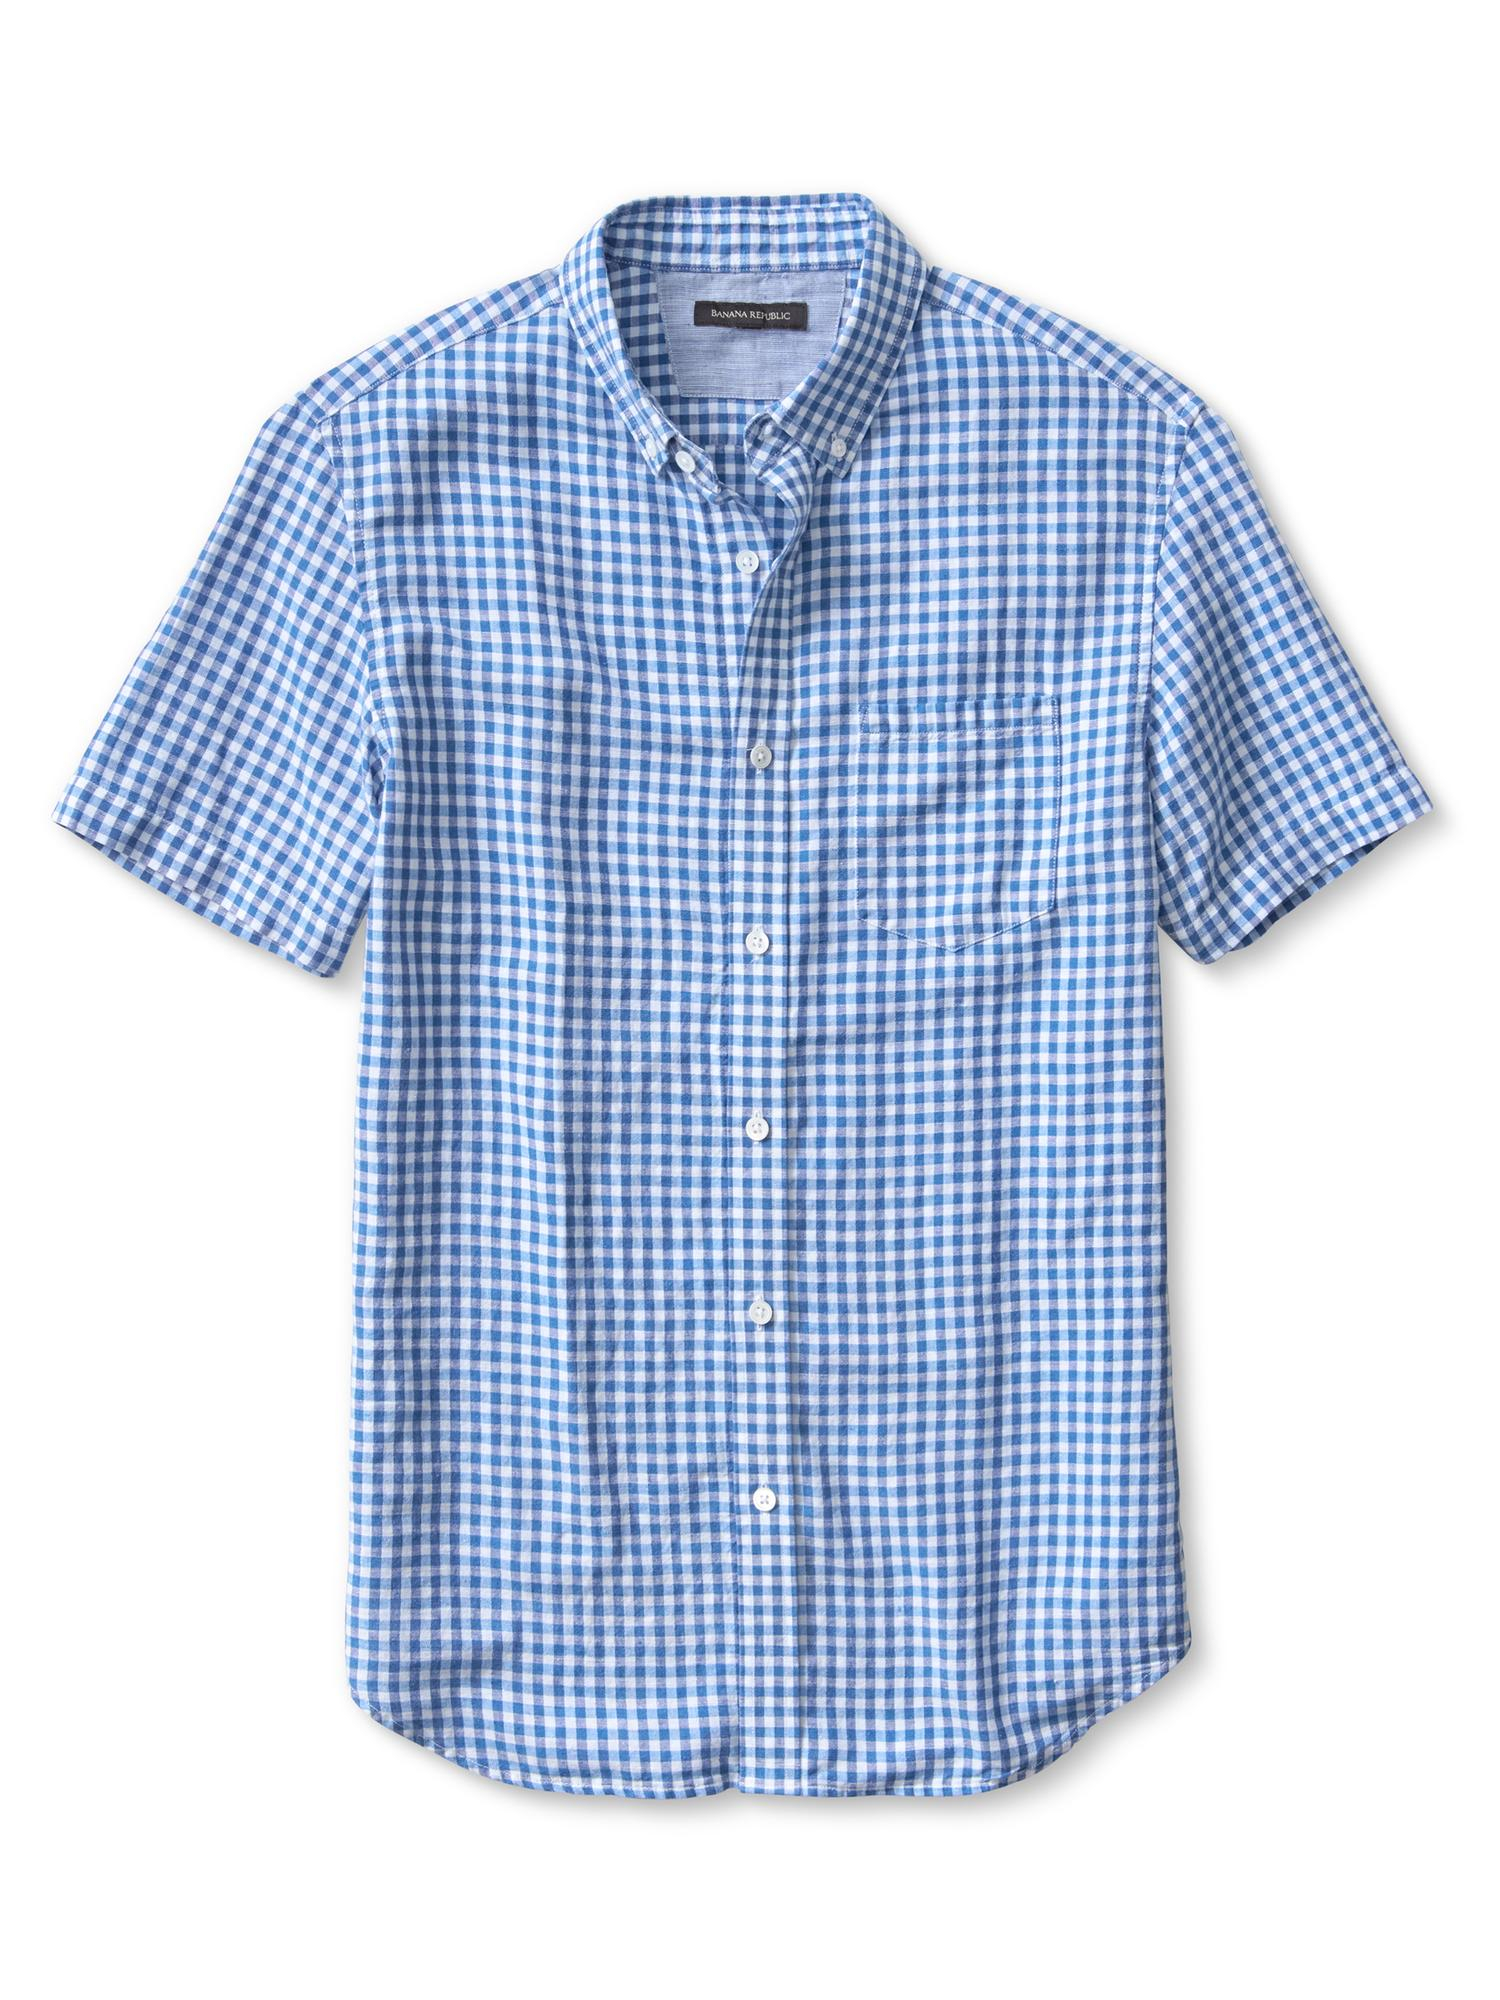 banana republic slim fit gingham linen cotton short sleeve